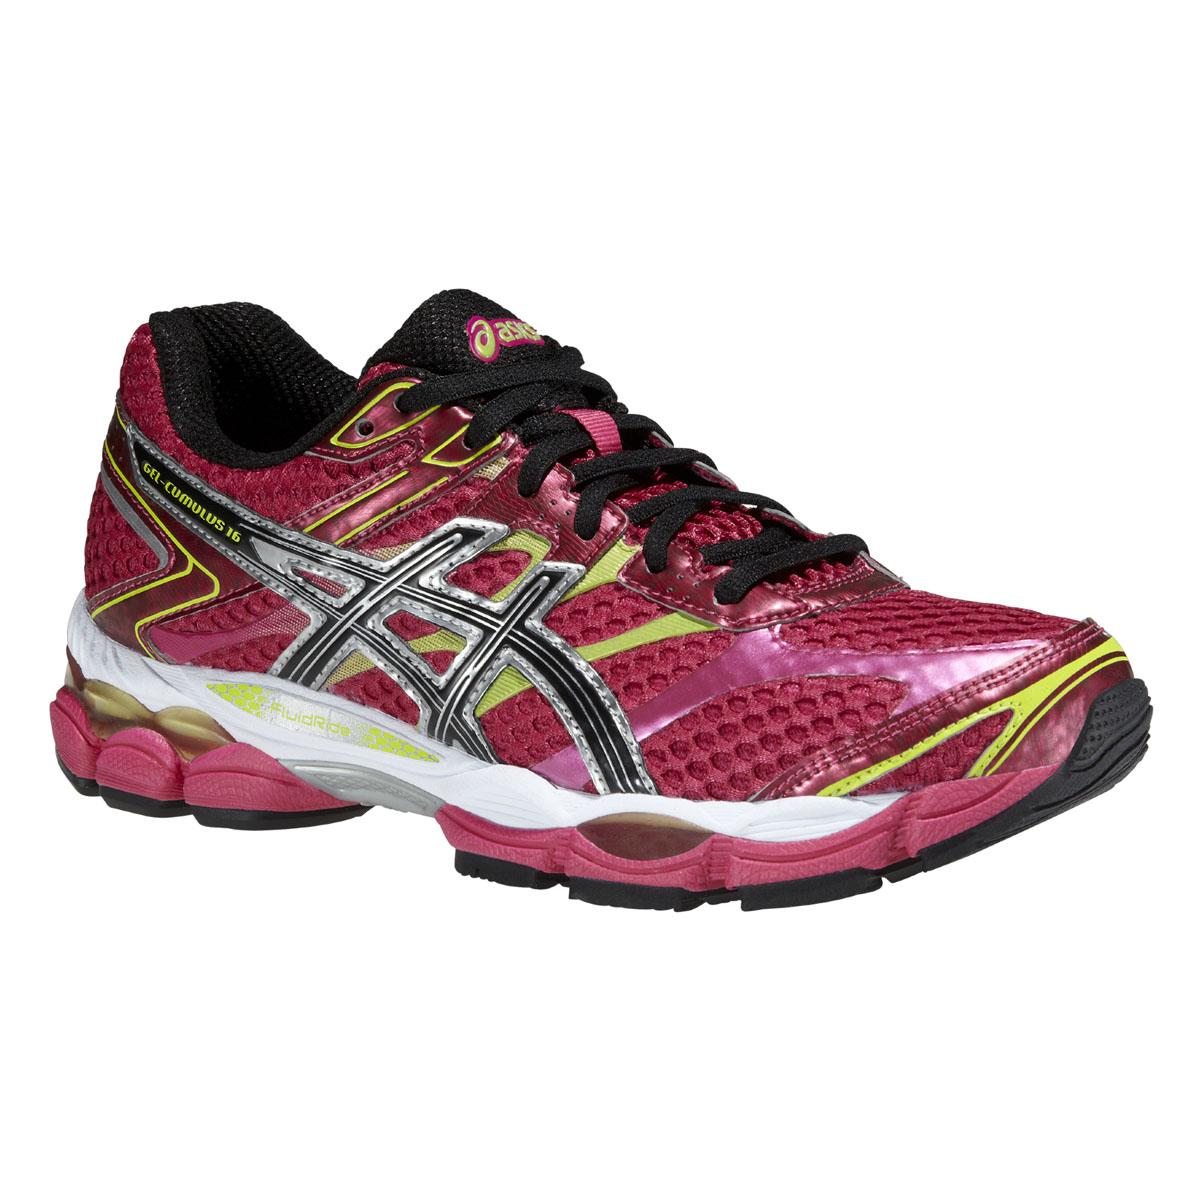 Womens Cumulus Shoes Running Asics Gel 16 Raspberryblacklime lcK1J3TF